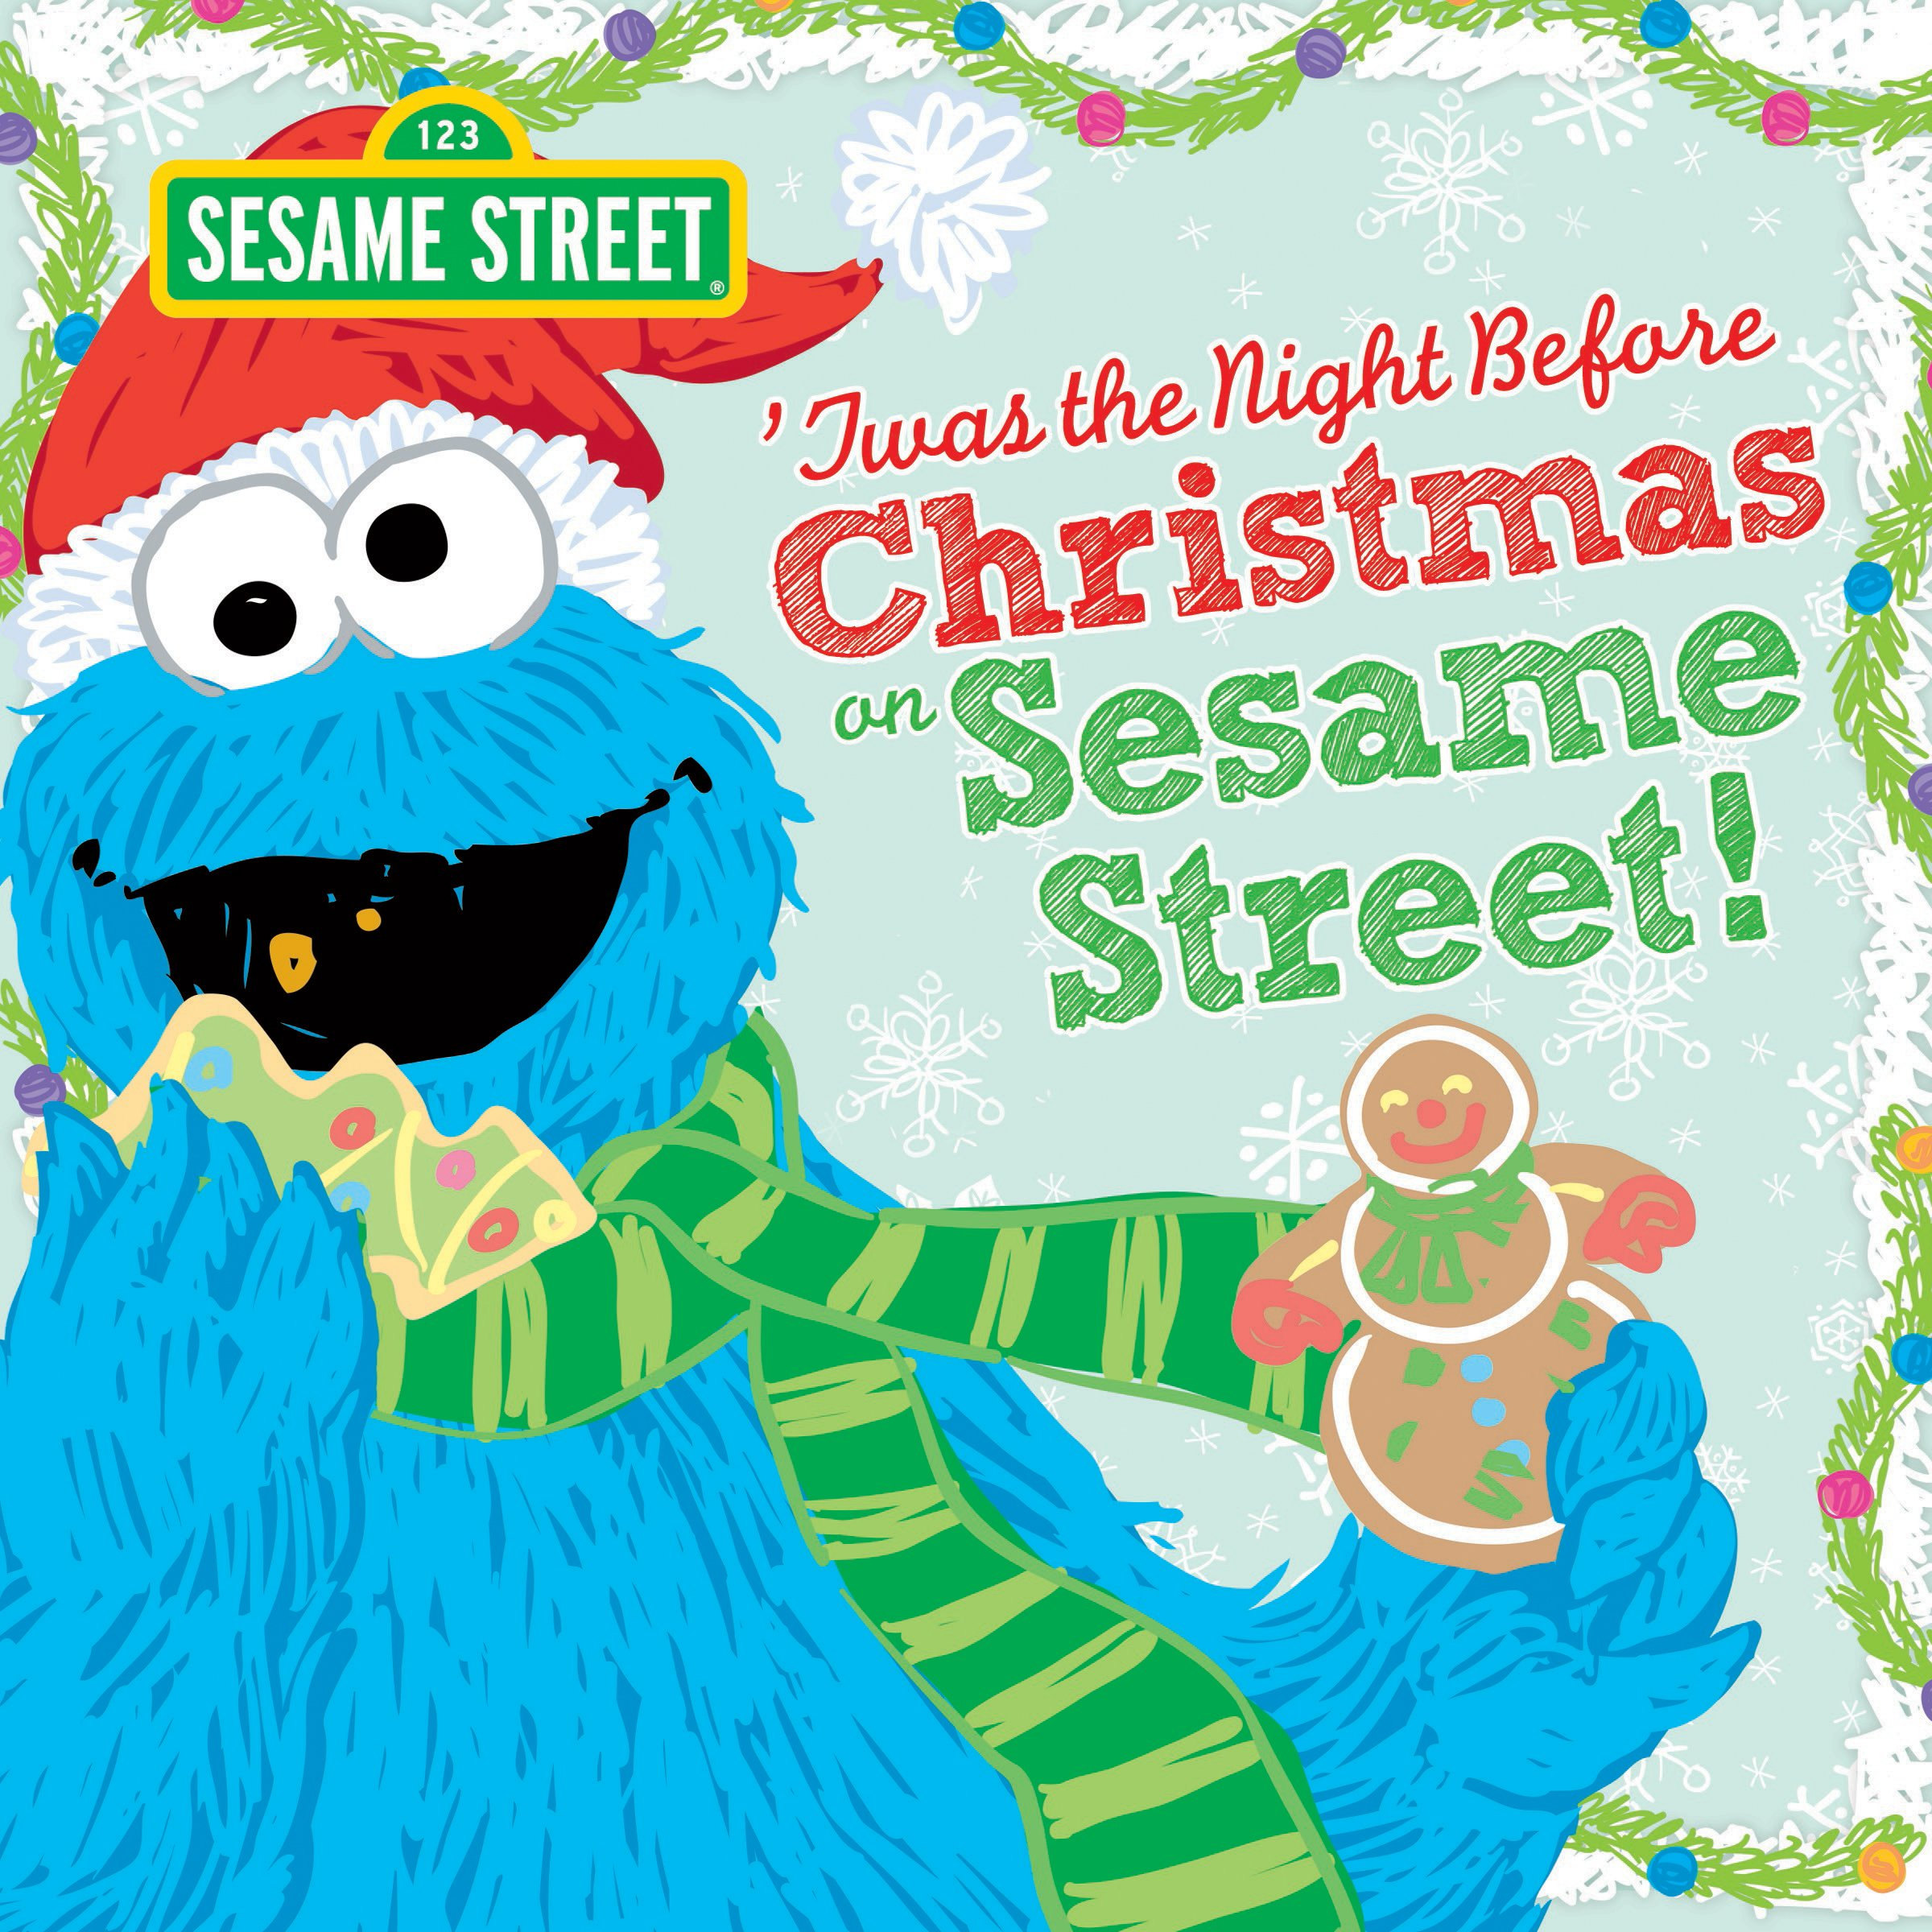 twas the night before christmas on sesame street sesame street scribbles cookie monster sesame workshop 0760789246265 amazoncom books